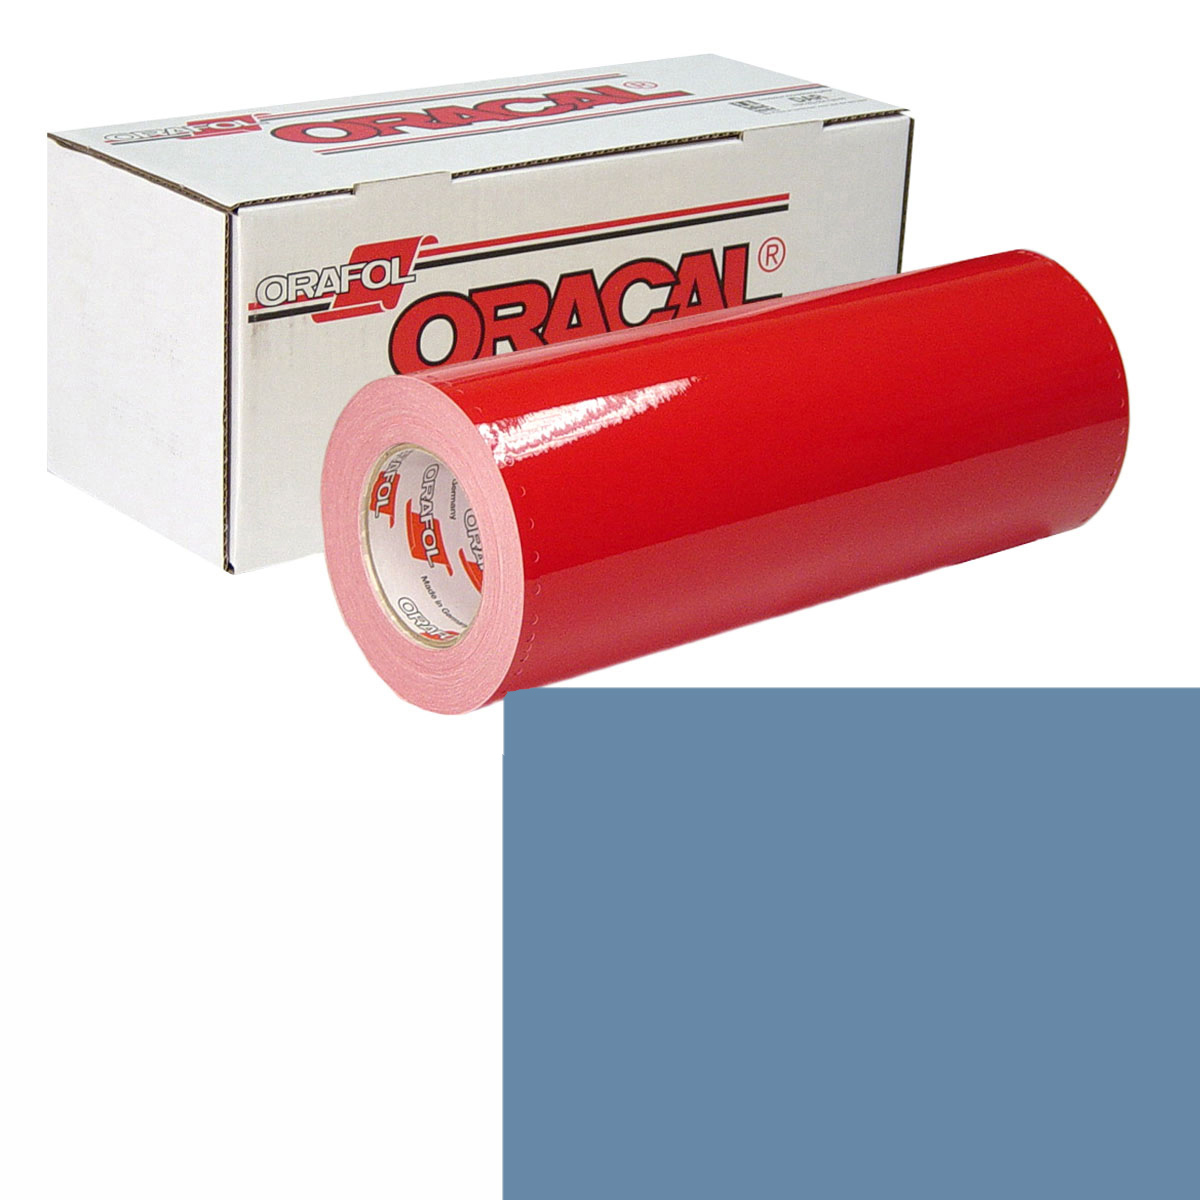 ORACAL 951 Unp 24In X 10Yd 549 Dove Blue